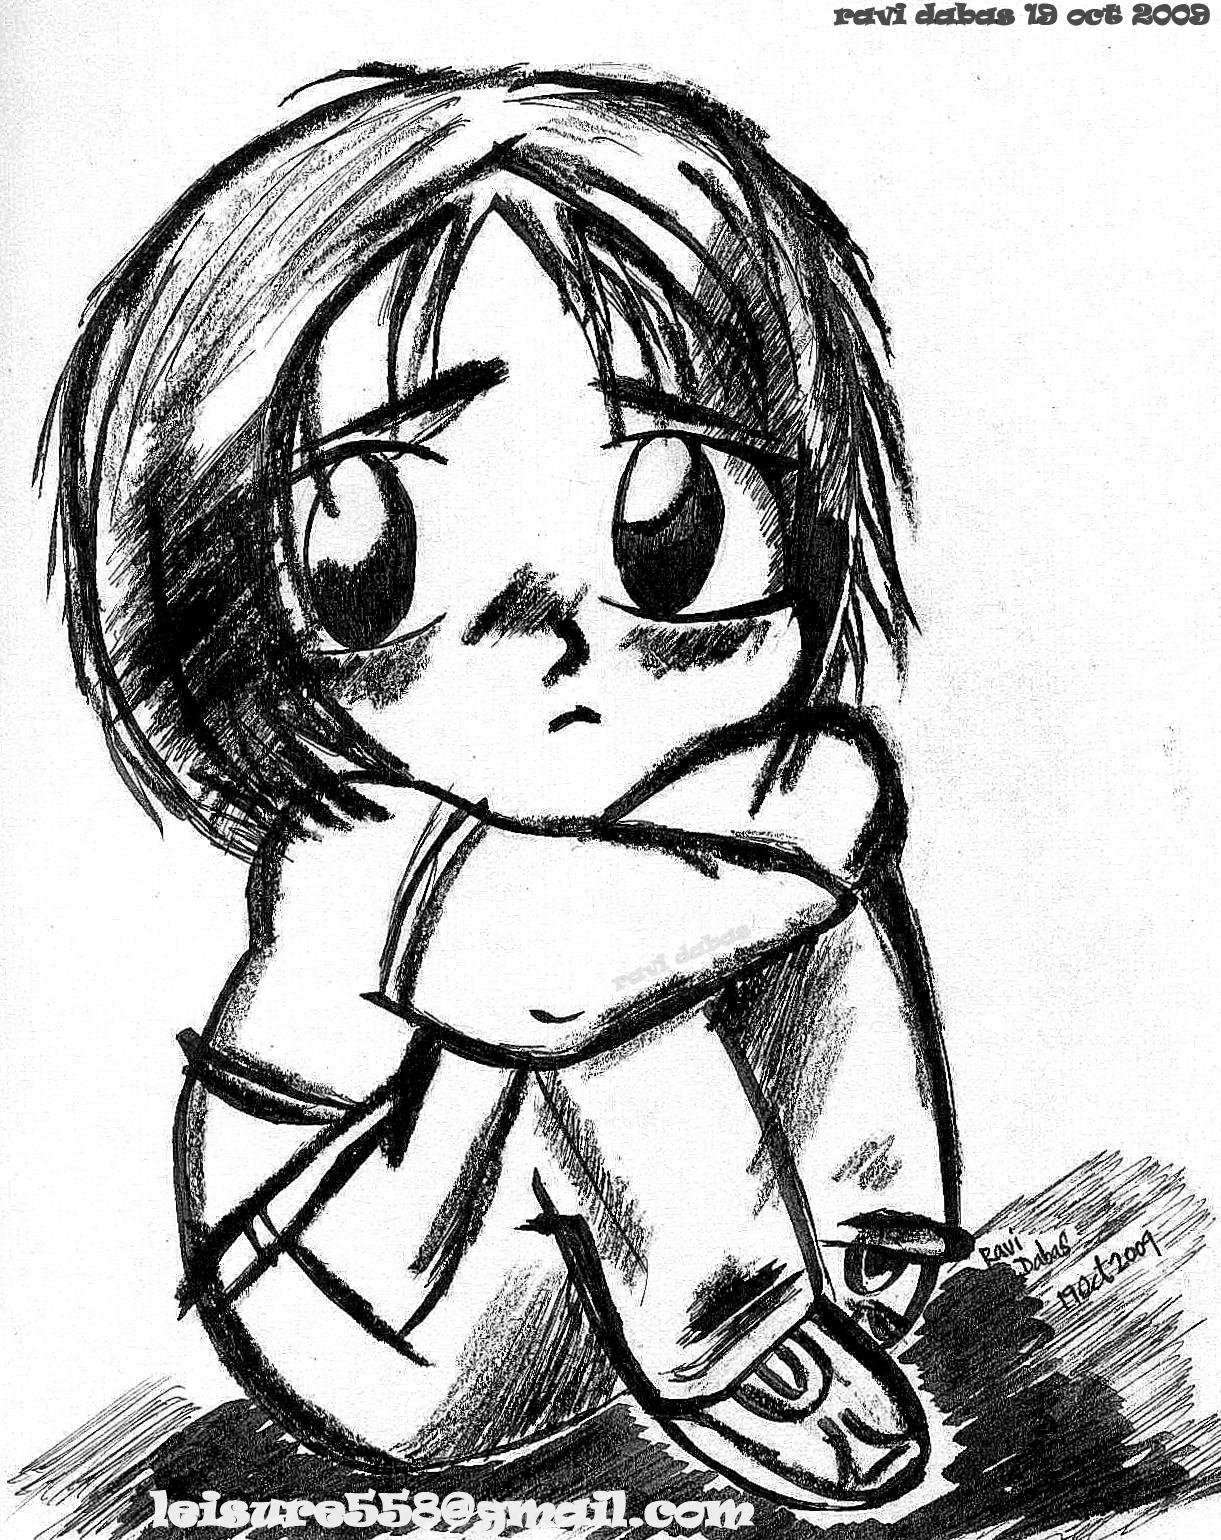 1221x1540 Sad Boy Sketch Anime Welcome To My Leisure